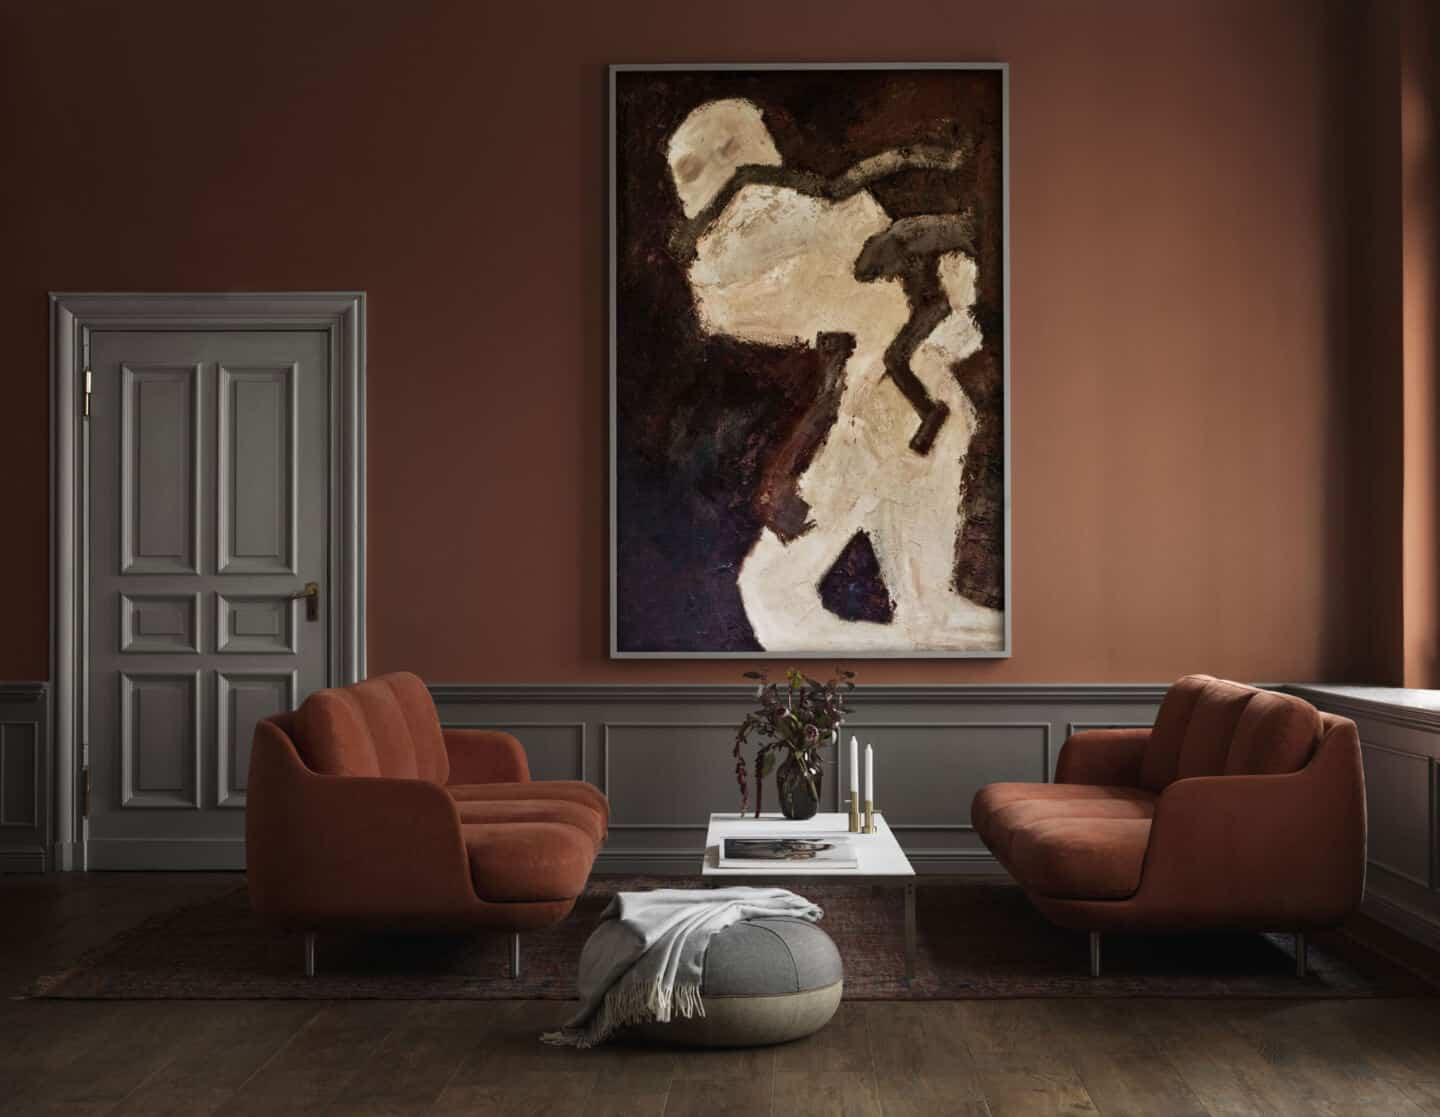 Autumnal Hues in interiors - A living room set up featuring two sofas facing one another either side of a coffe table, with a large piece of abstract artwork hung on the wall behind.